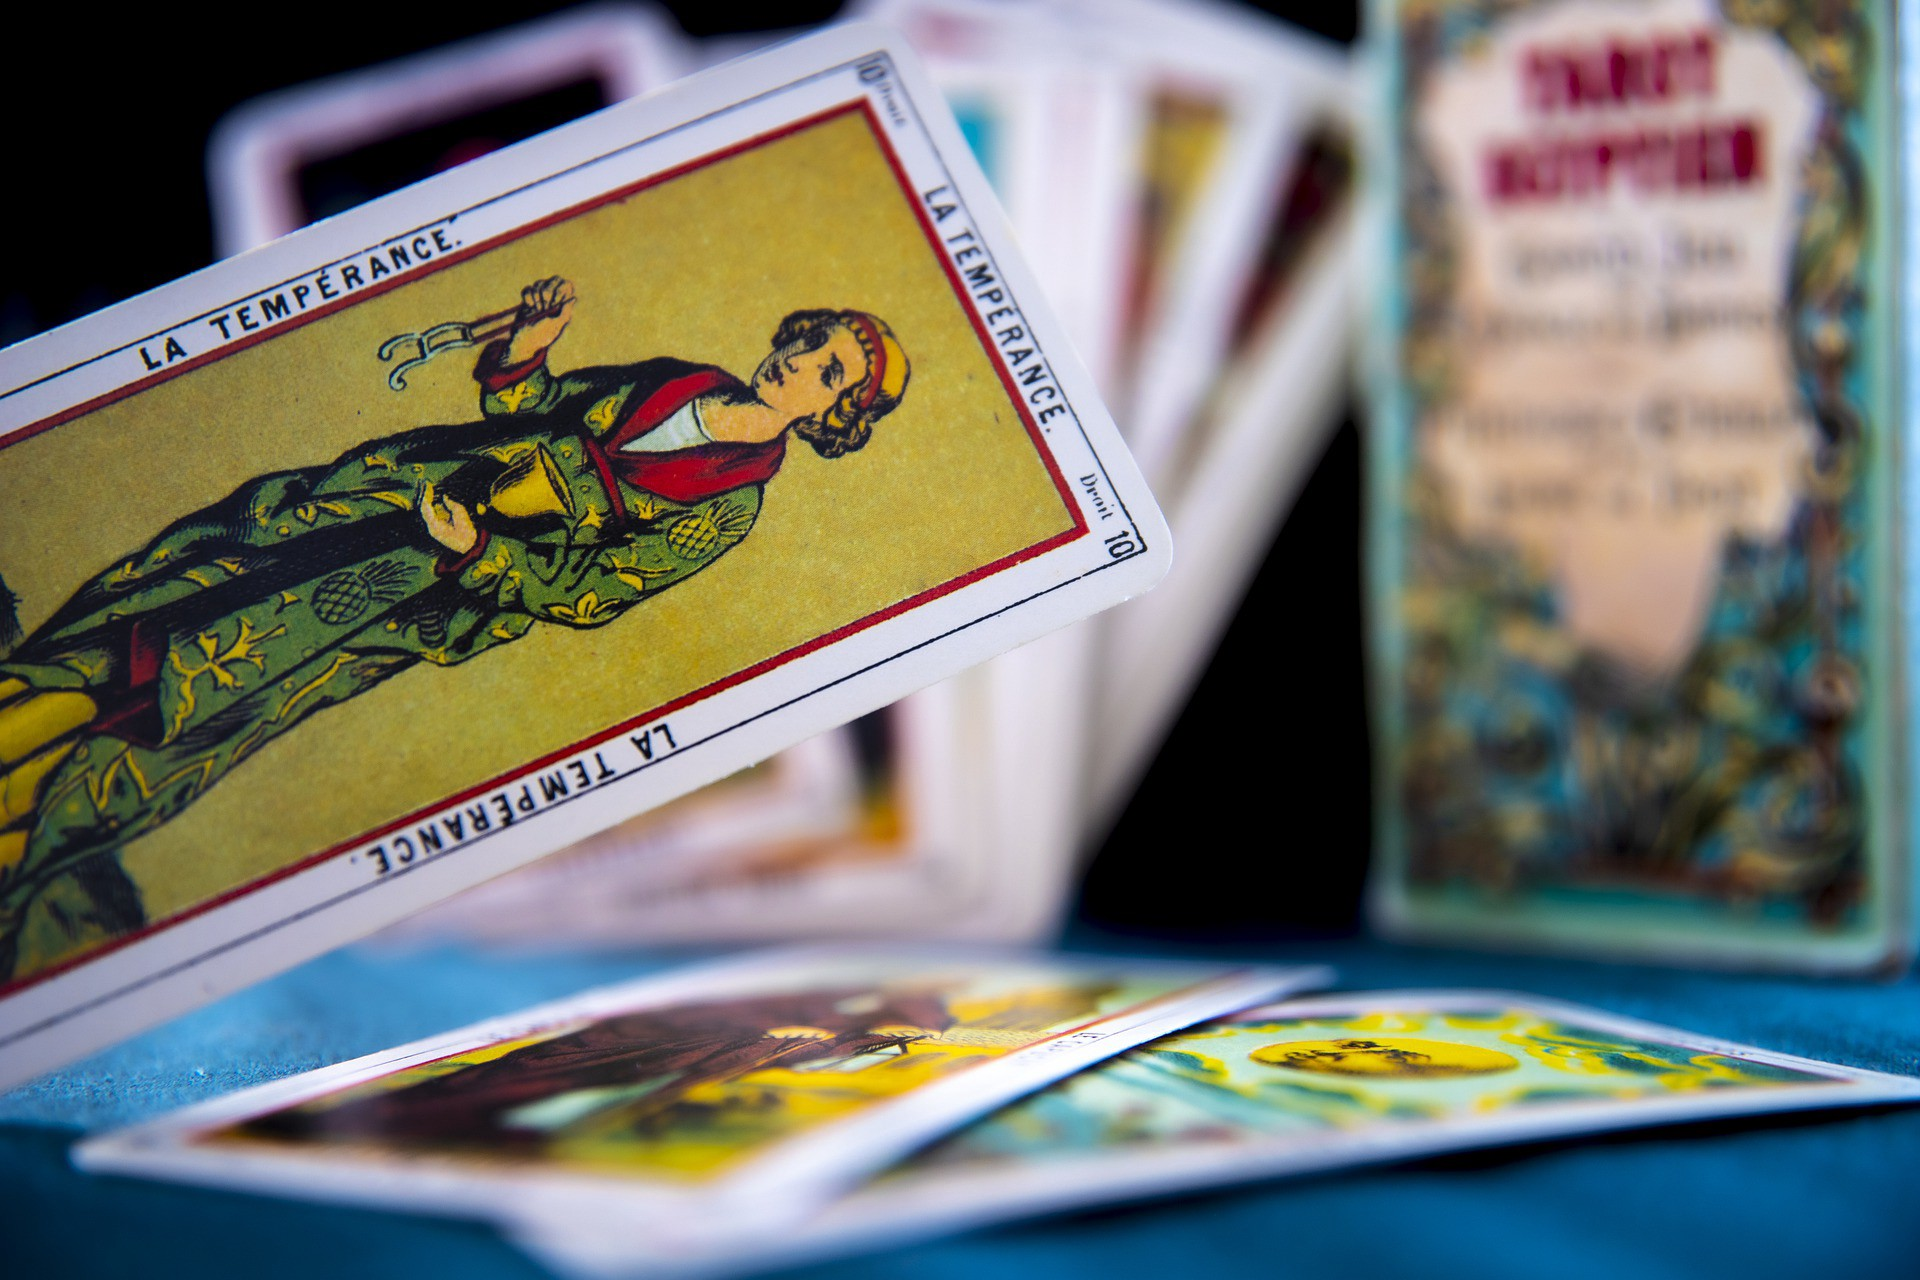 Photo of the Temperance with other tarot cards out of focus in the background